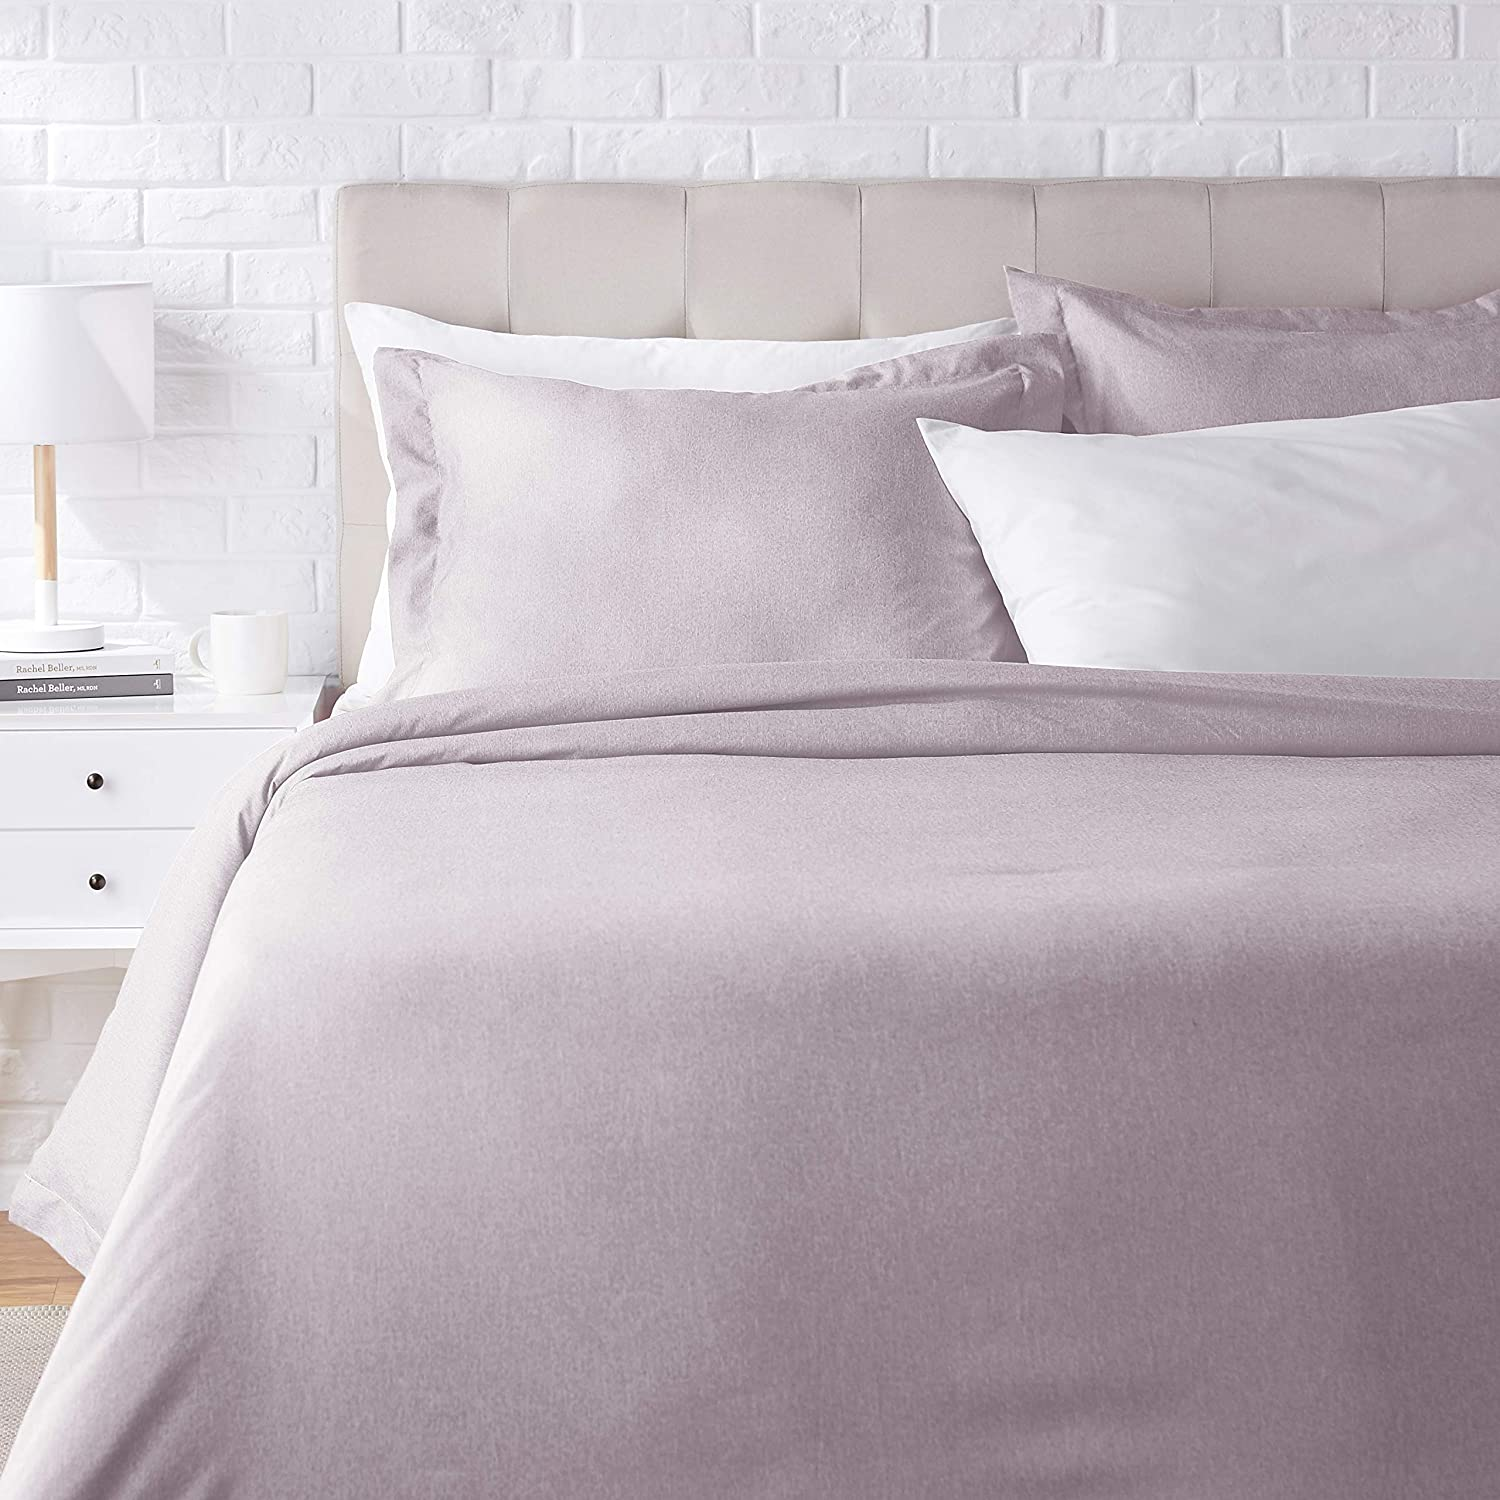 AmazonBasics Chambray Duvet Cover Bed Set - Full or Queen, Purple Dusk